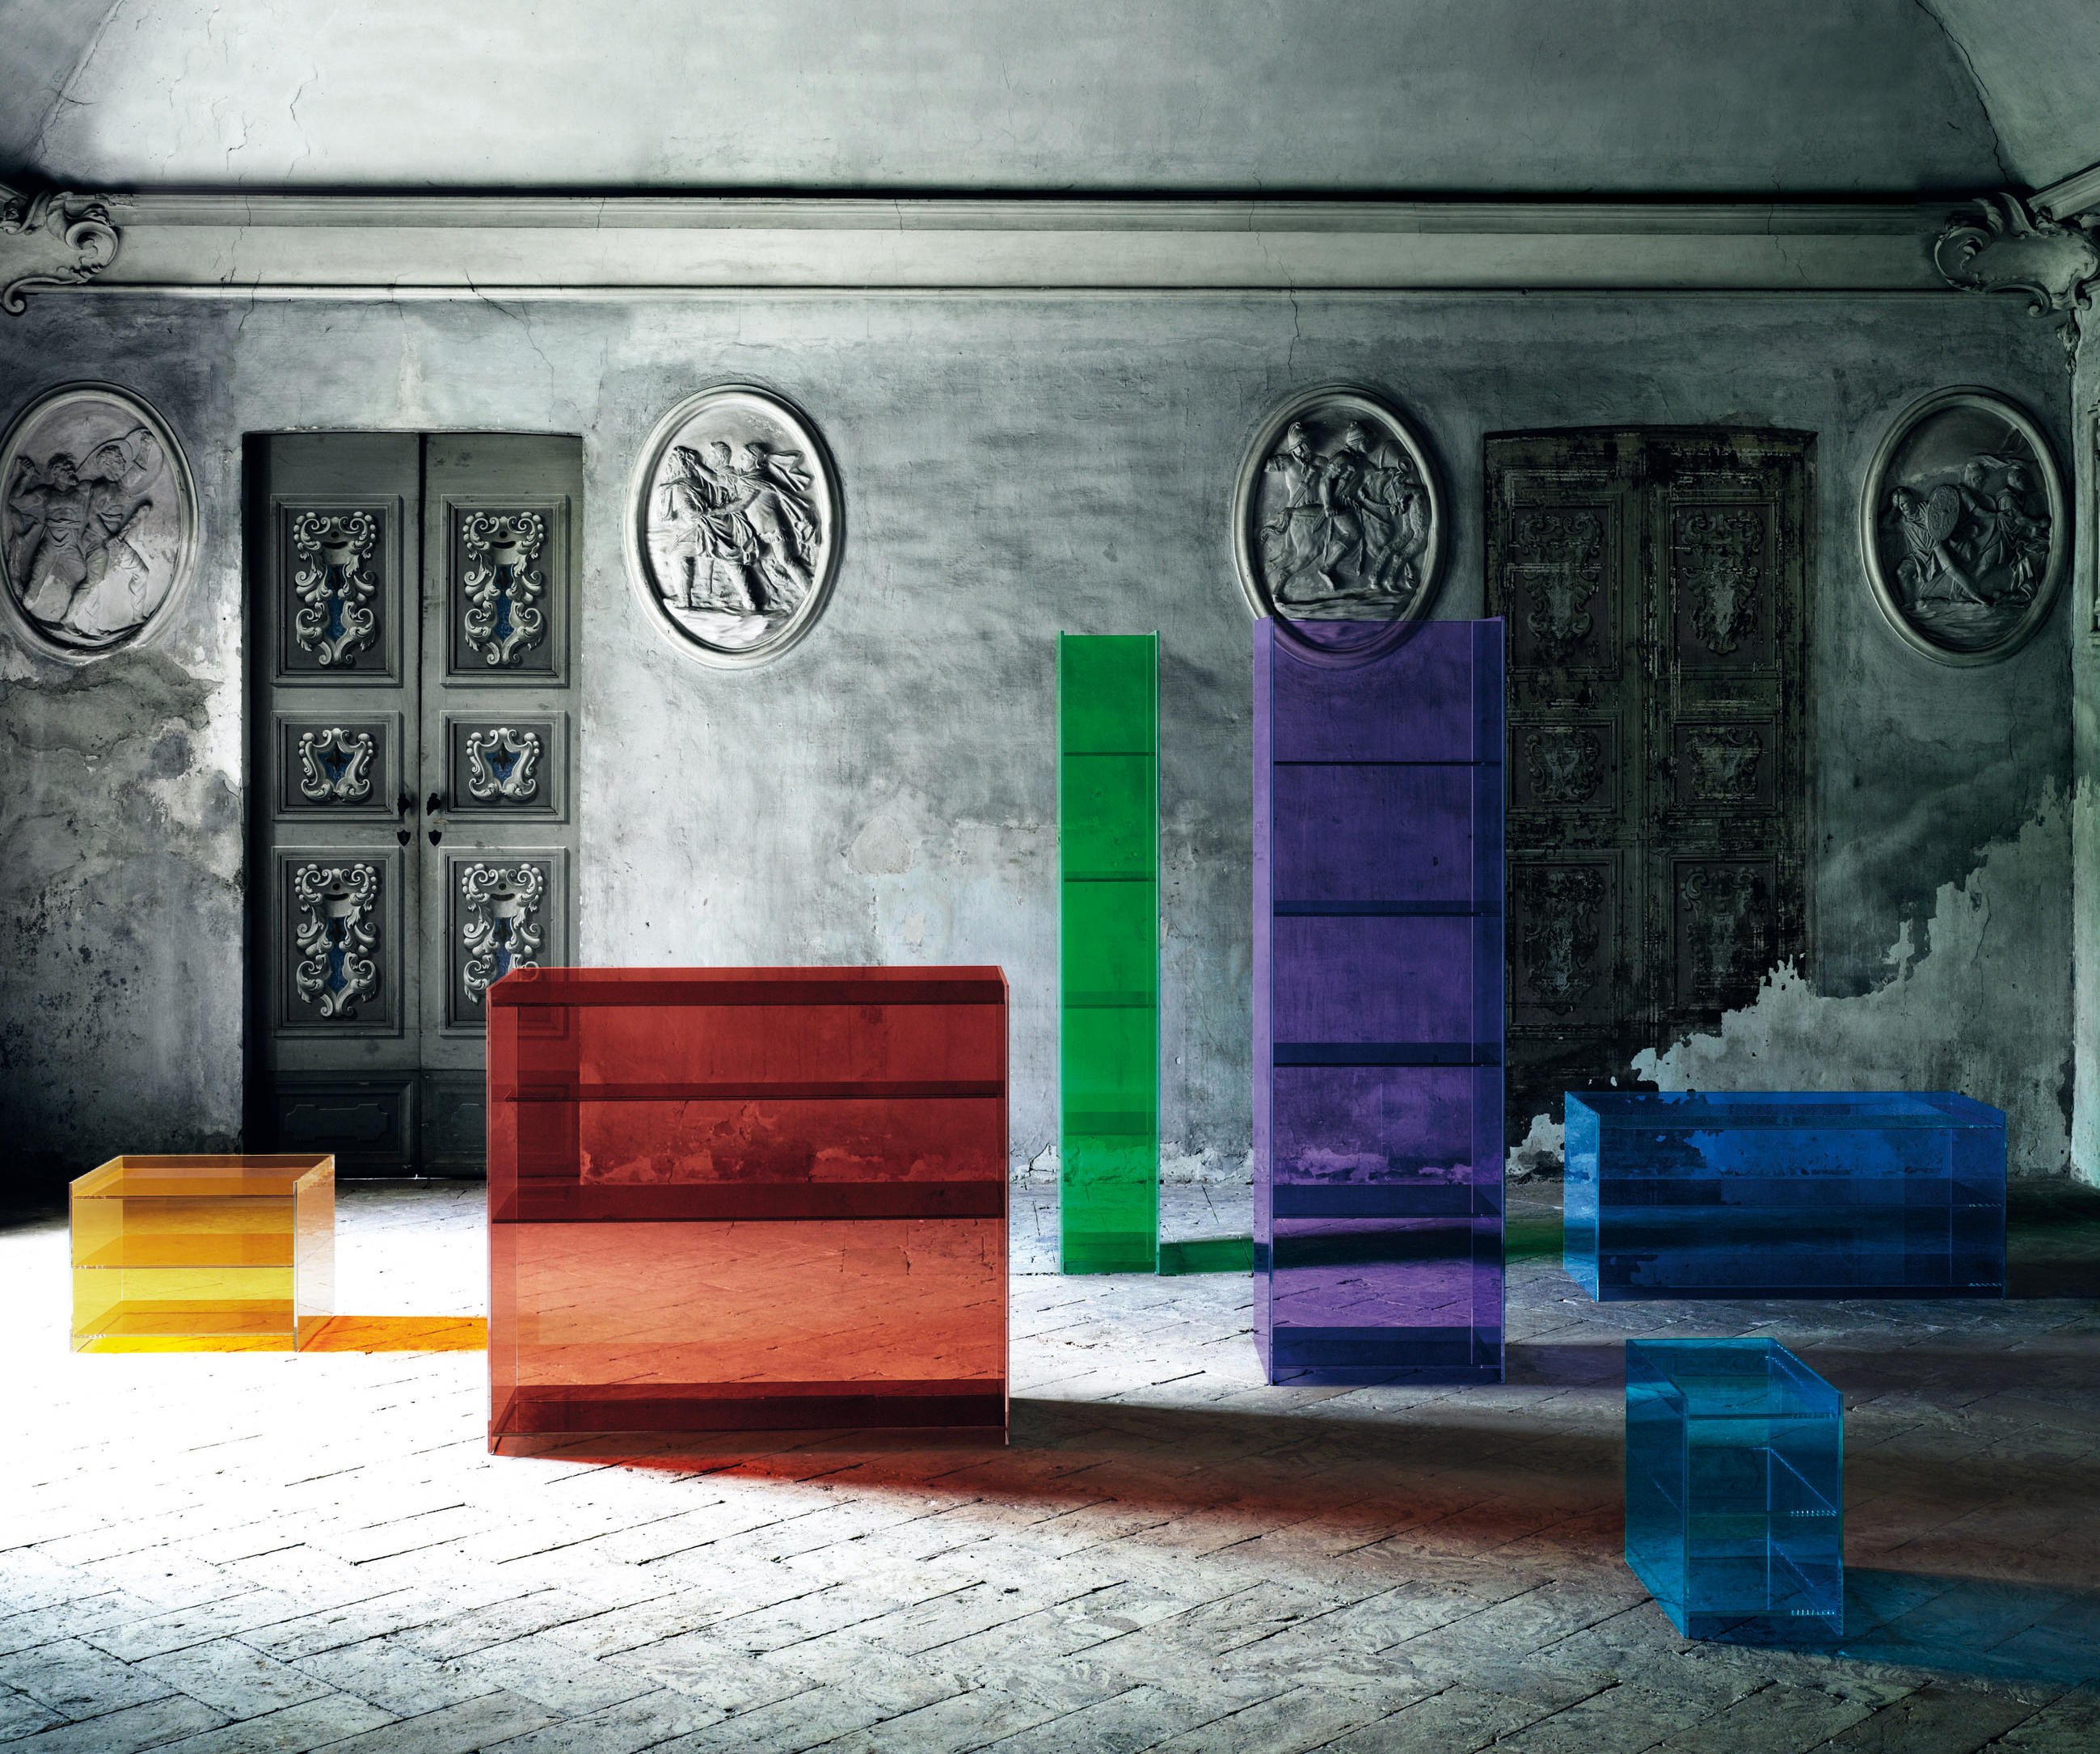 dr jekyll and mr hyde regale von glas italia architonic. Black Bedroom Furniture Sets. Home Design Ideas